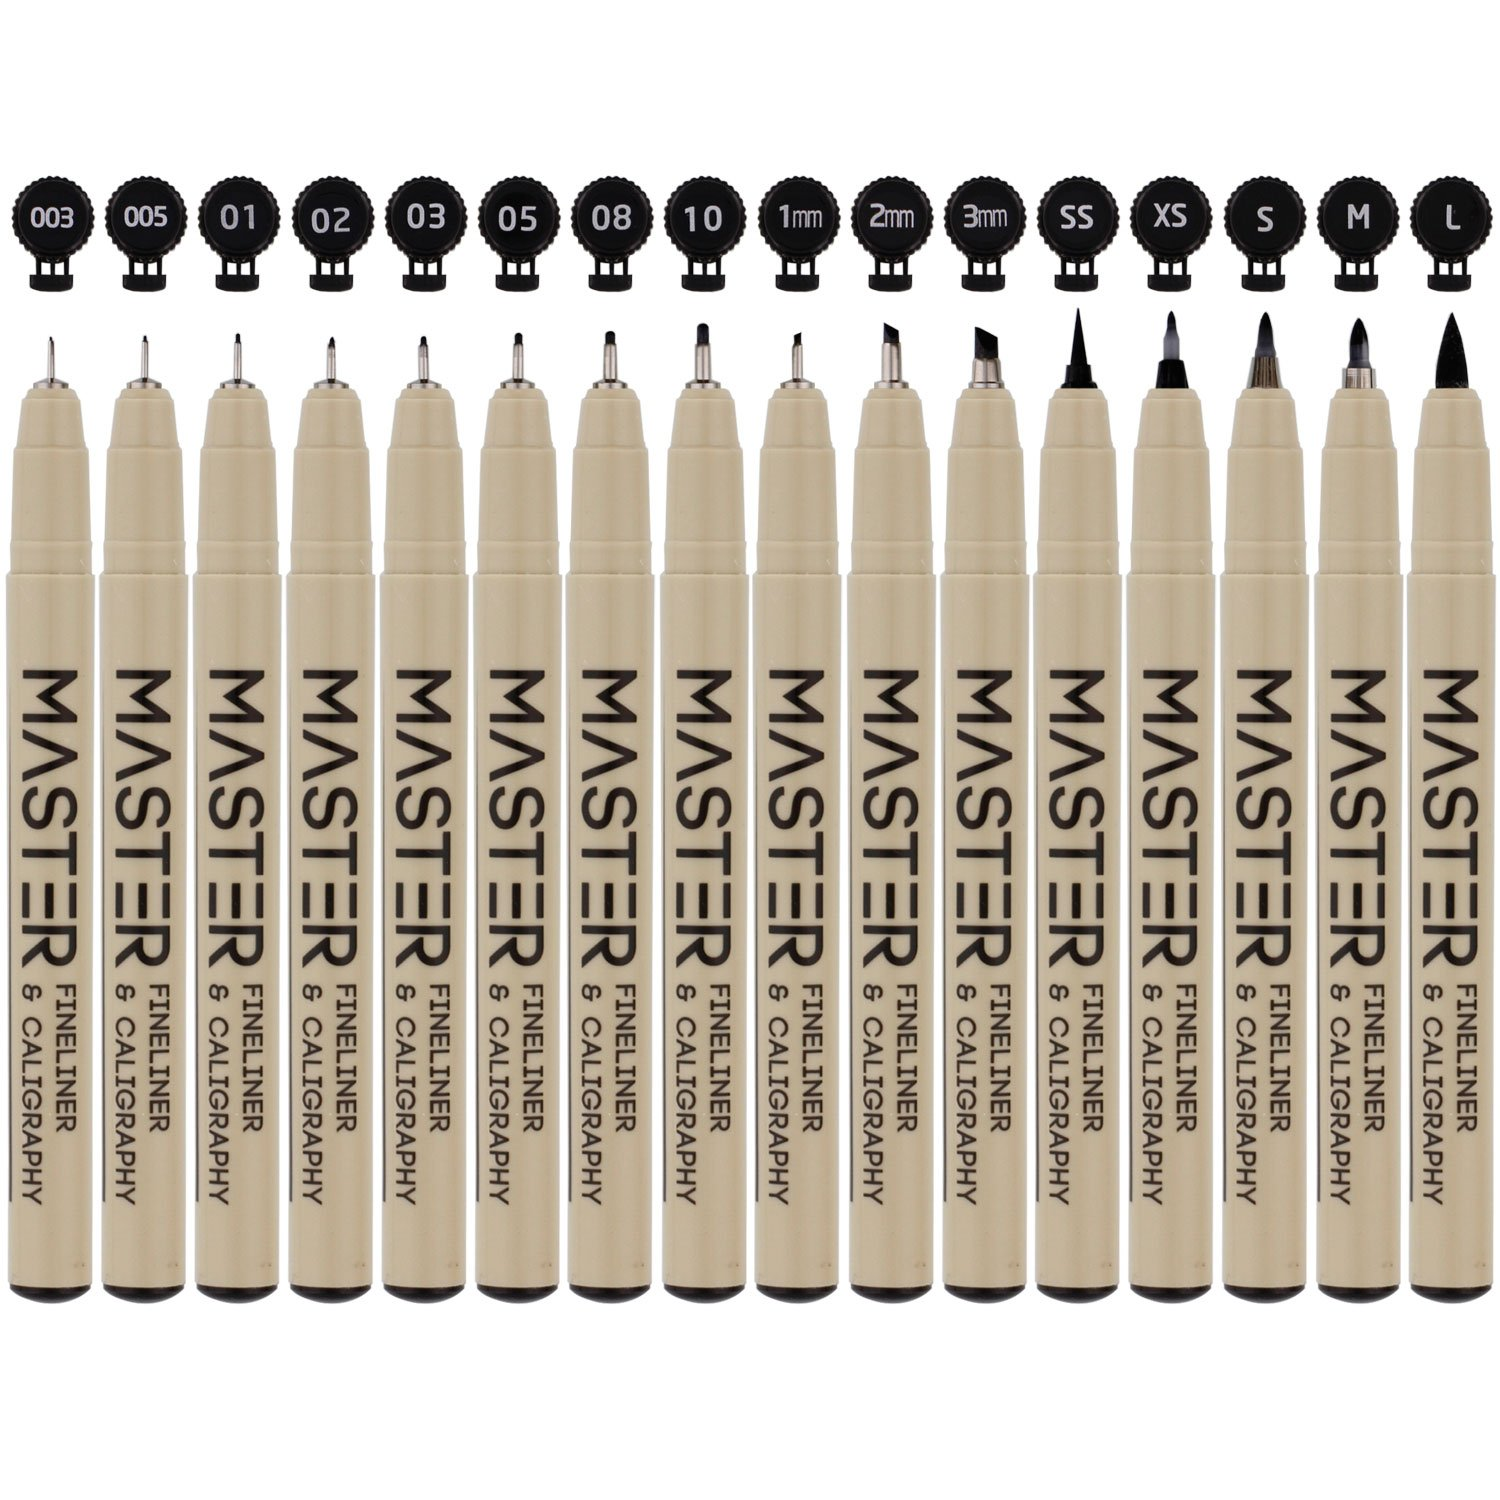 Set of 32 Unique Black and Colored Master Markers Micro-Pen Fineliner Ink Pens - 11 Vibrant Colors & 21 Black Micro Fine Point, Chisel, Brush & Calligraphy Tip Nibs - Artist Illustration Drawing by Mastermarkers (Image #4)